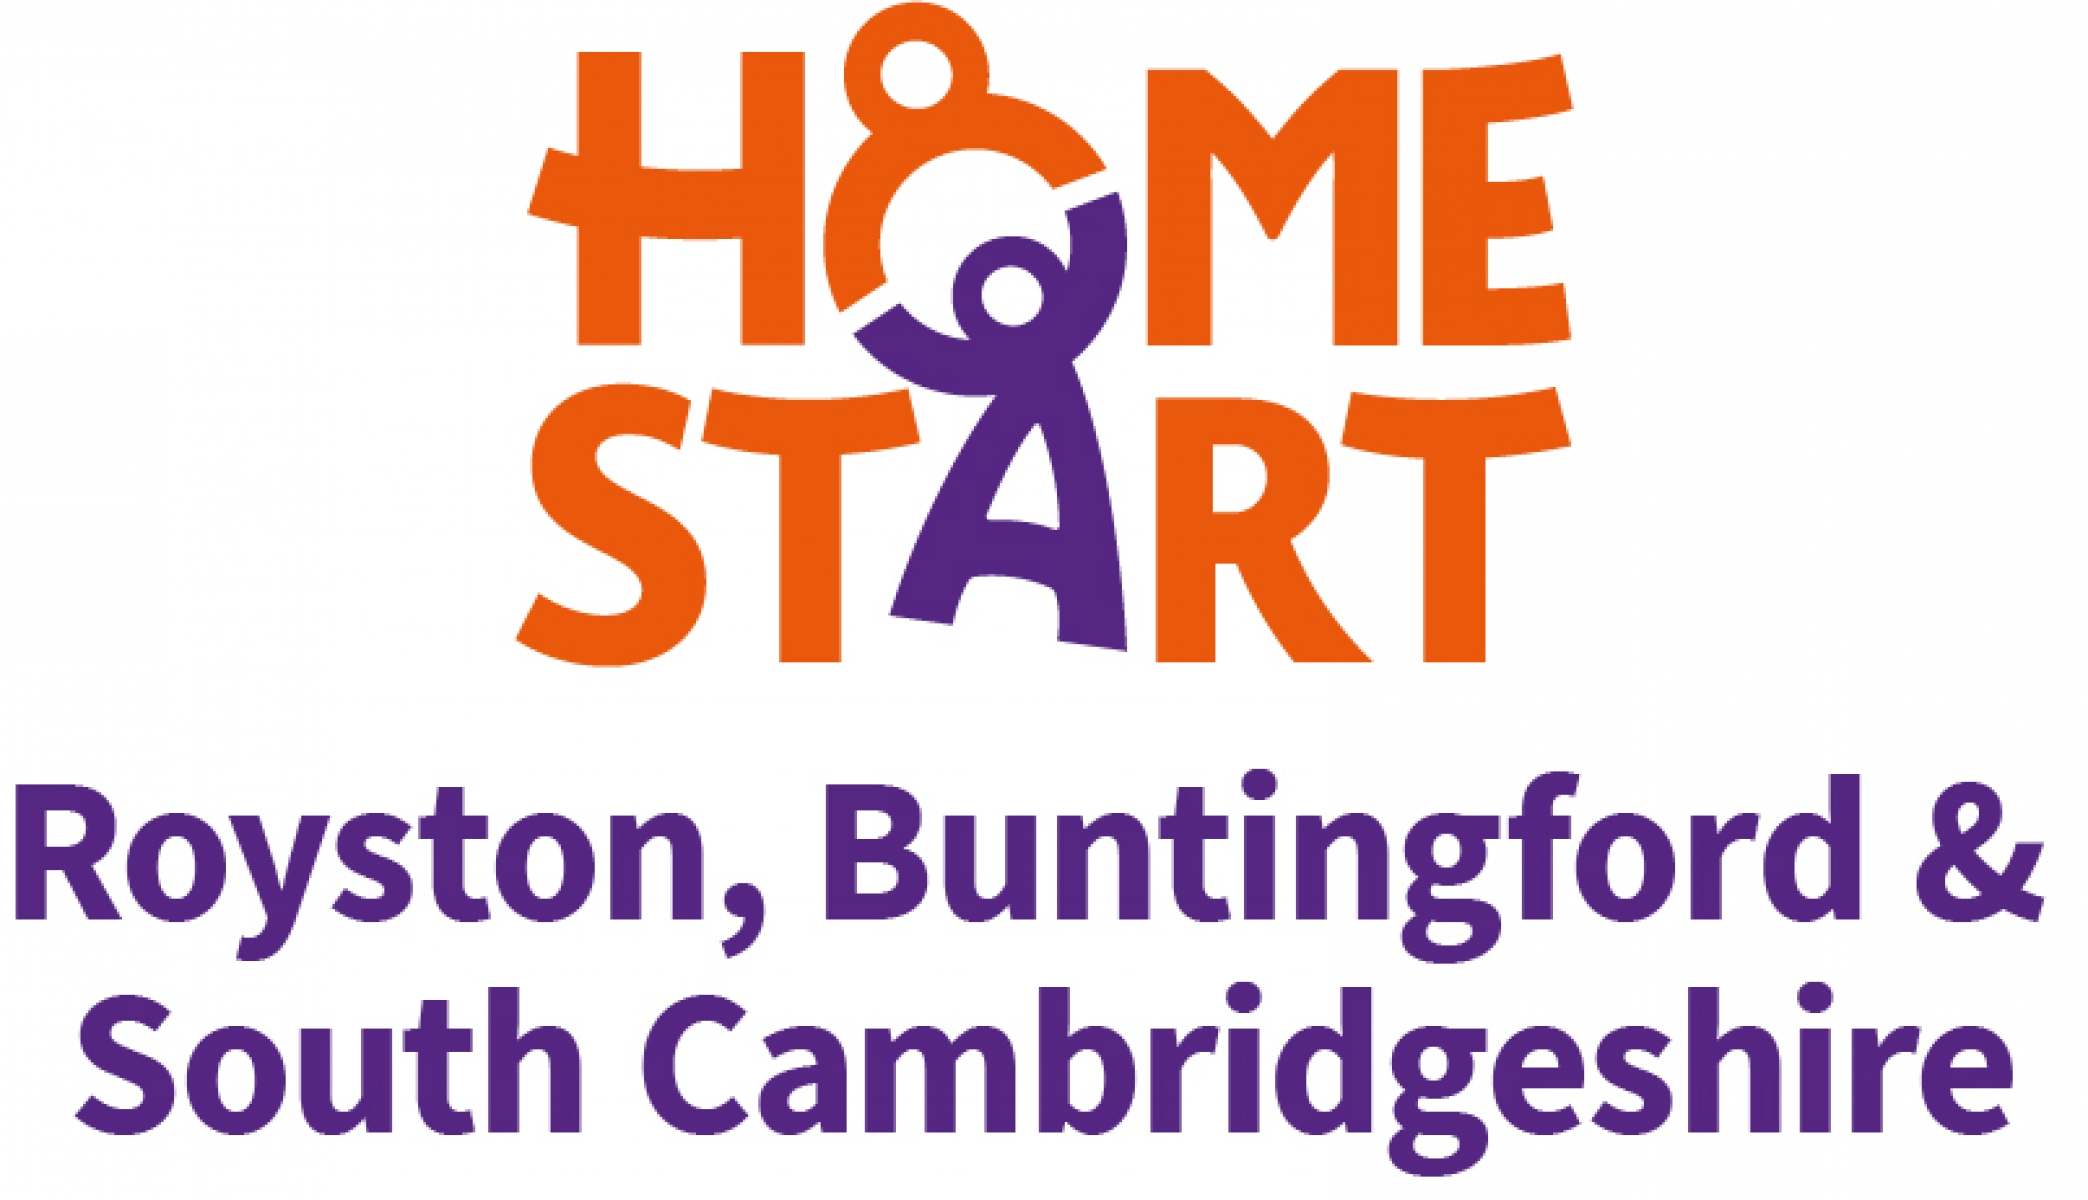 Home-Start Royston, Buntingford and South Cambridgeshire eCards